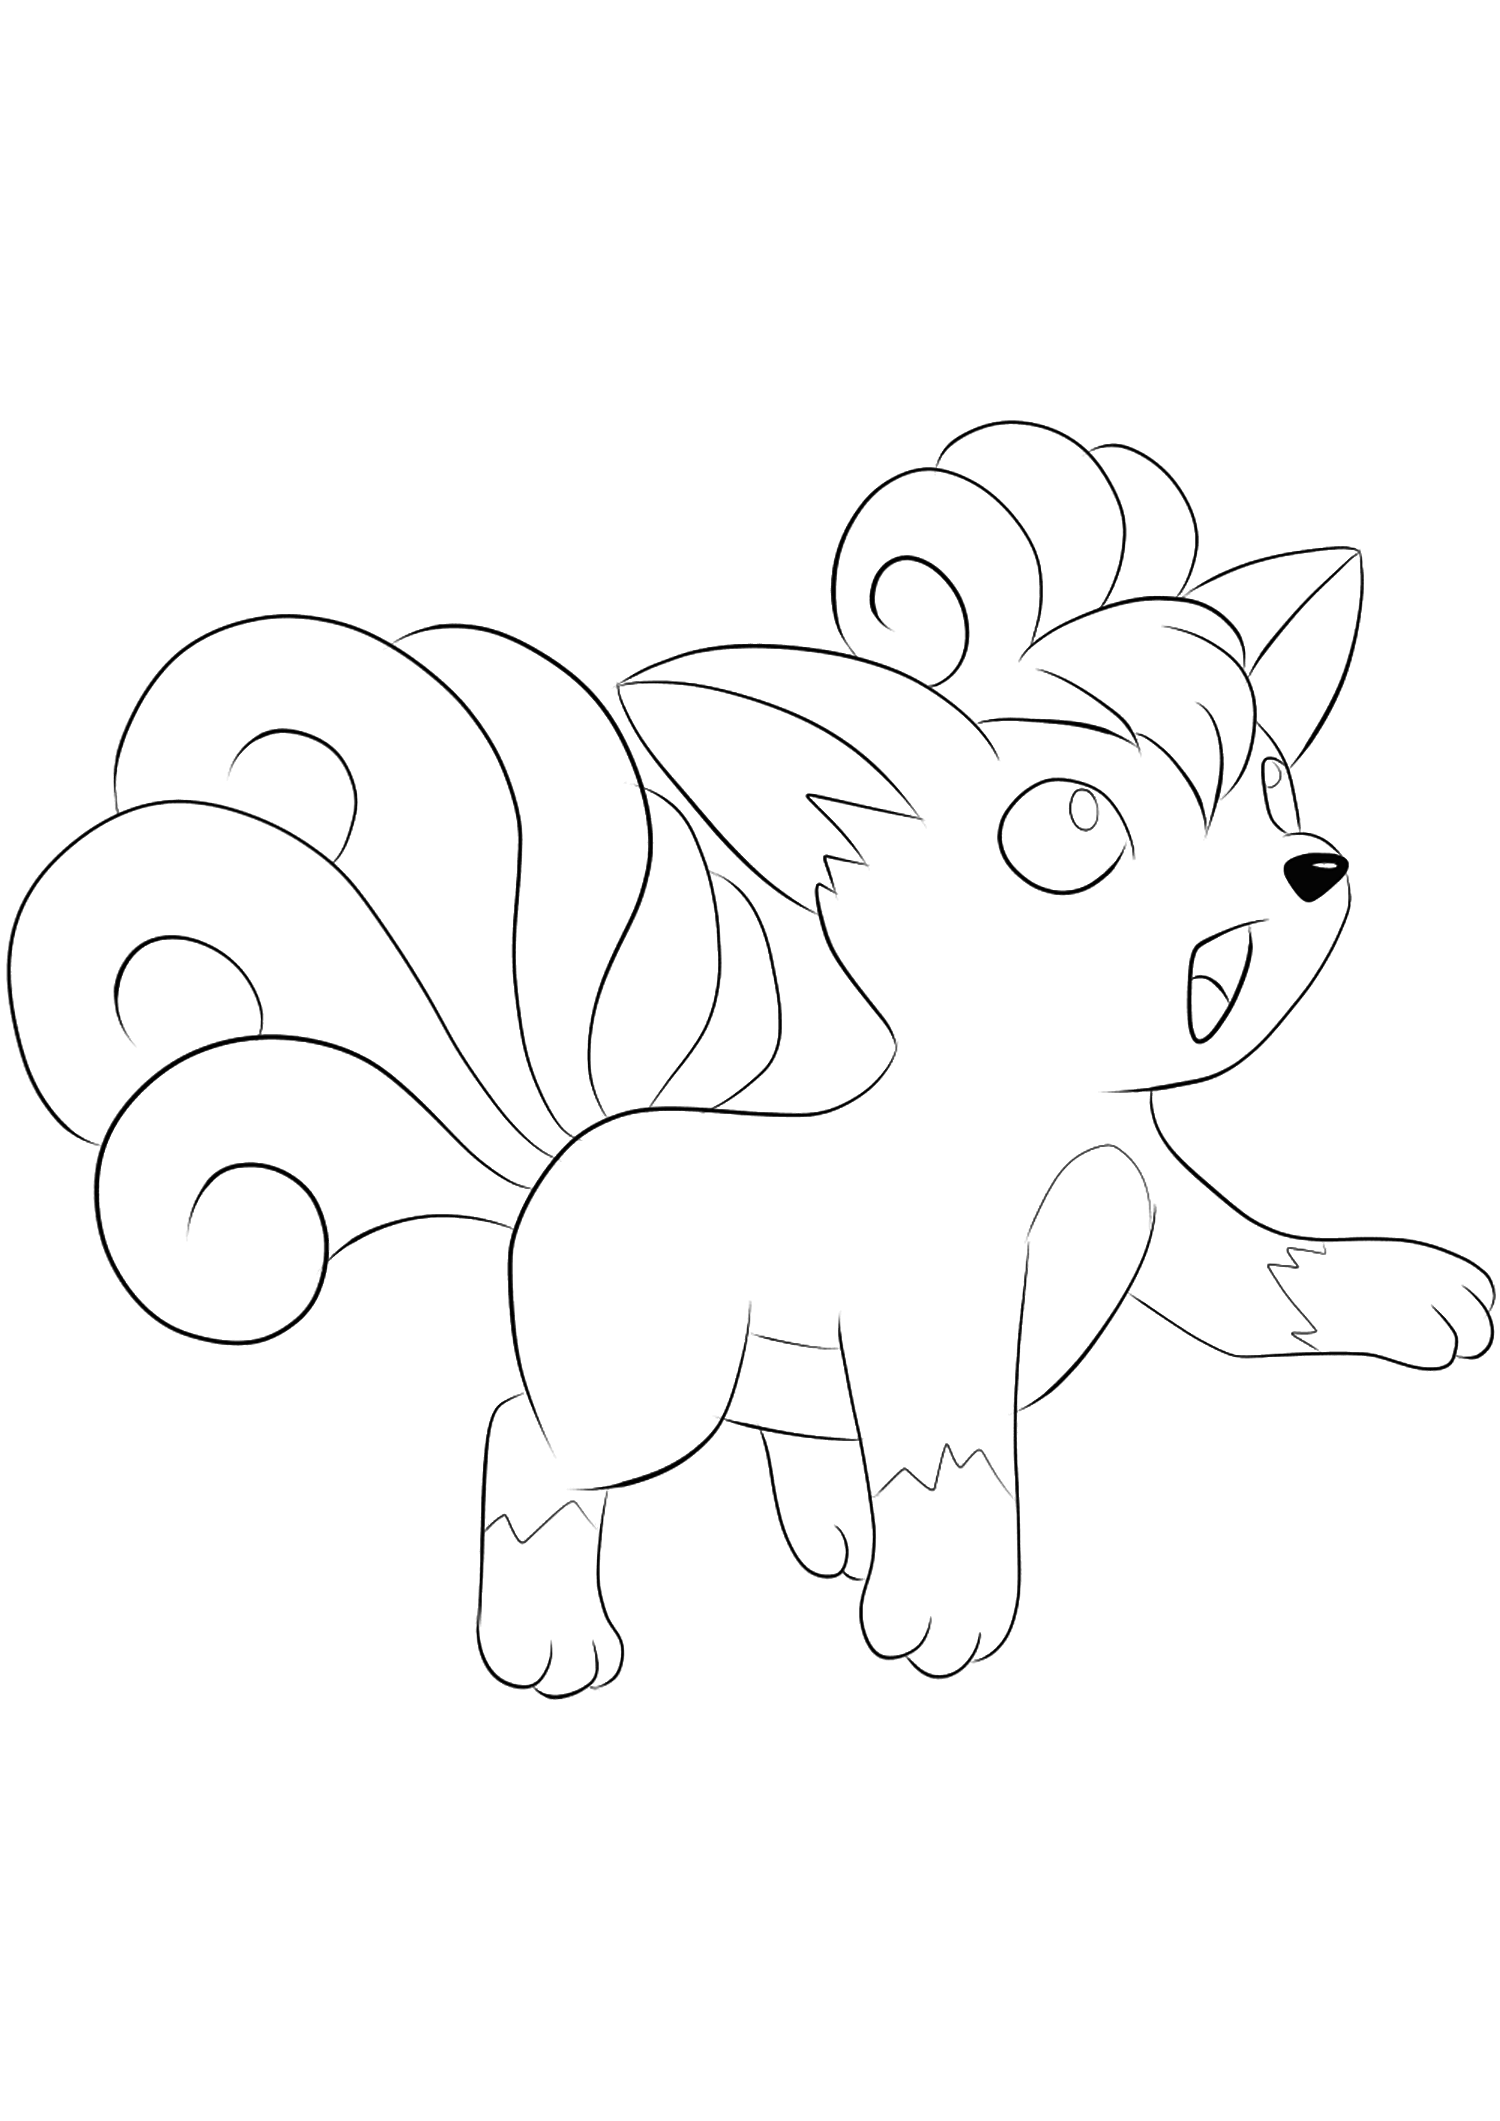 <b>Vulpix</b> (No.37) : Pokemon (Generation I)